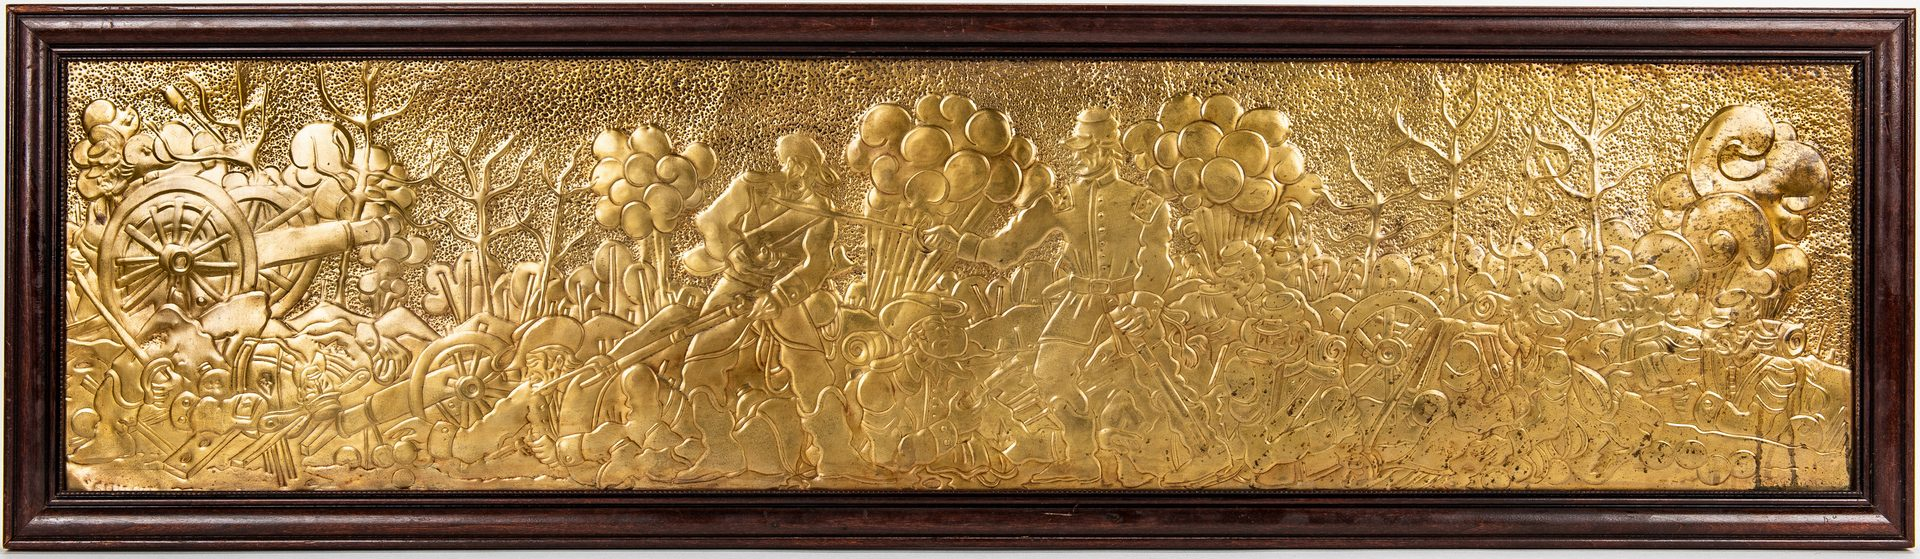 Lot 515: Greg Ridley Gilt Copper Panel, Shiloh Battle